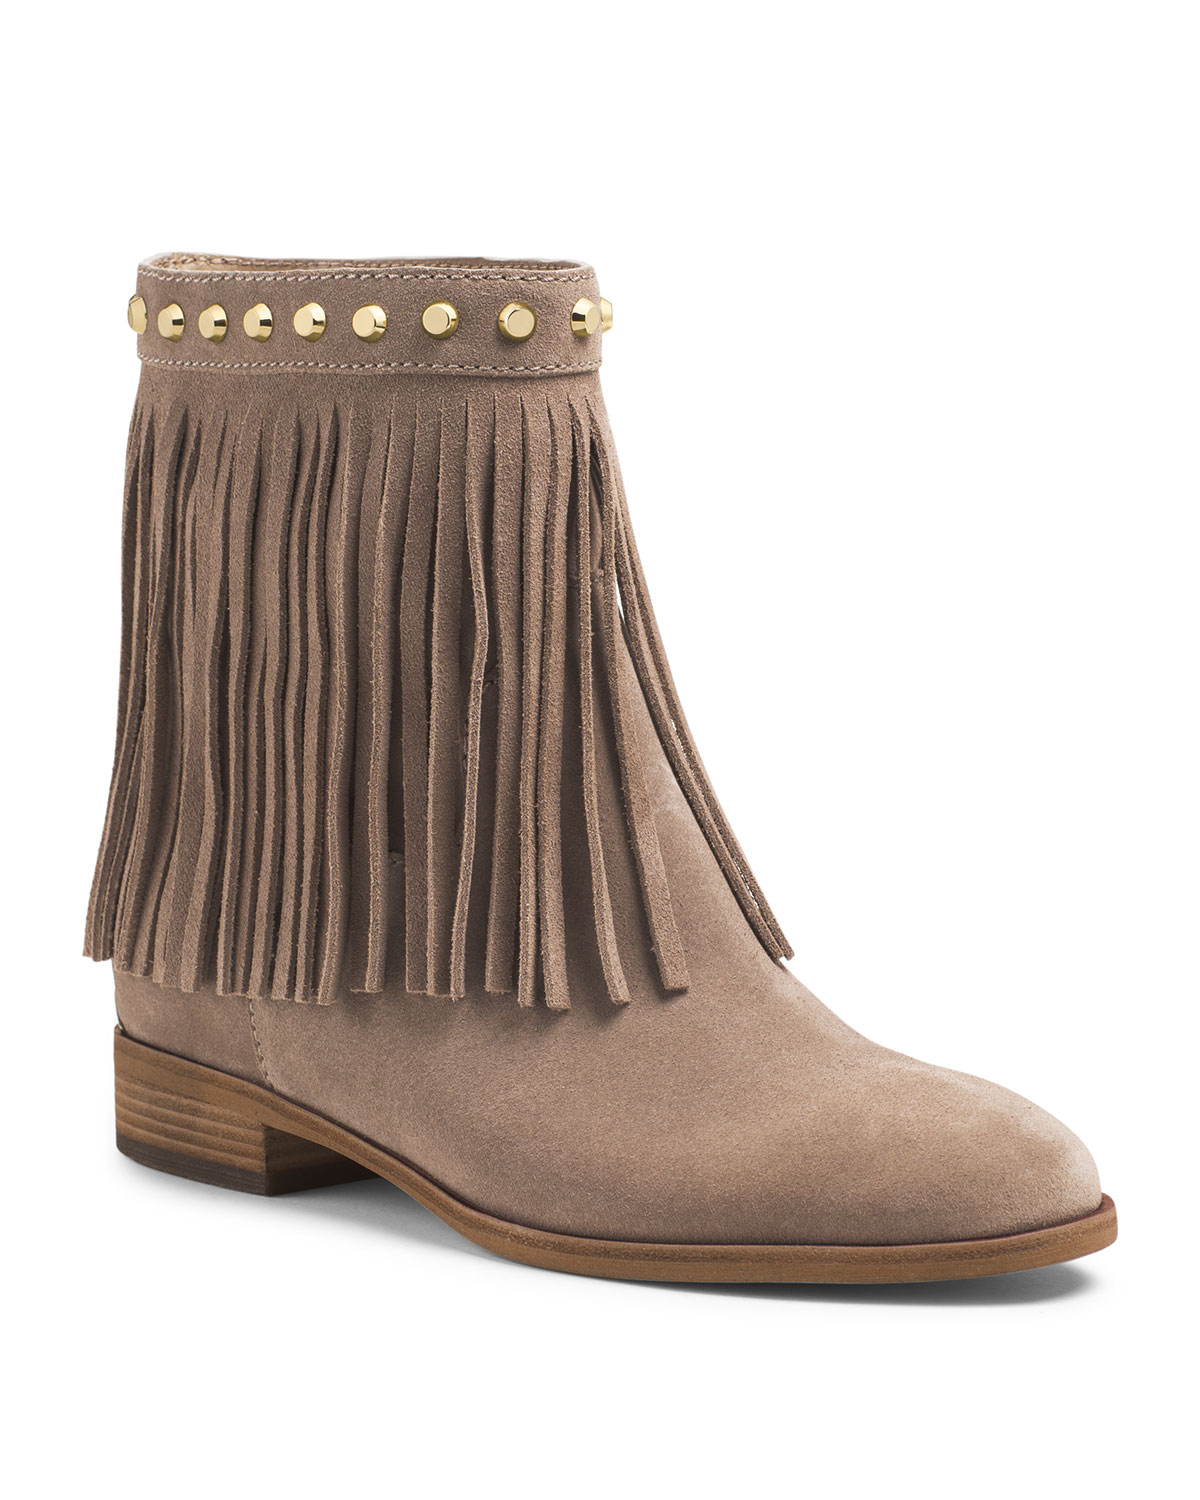 Lyst Michael Kors Michael Billy Studded Fringe Bootie In